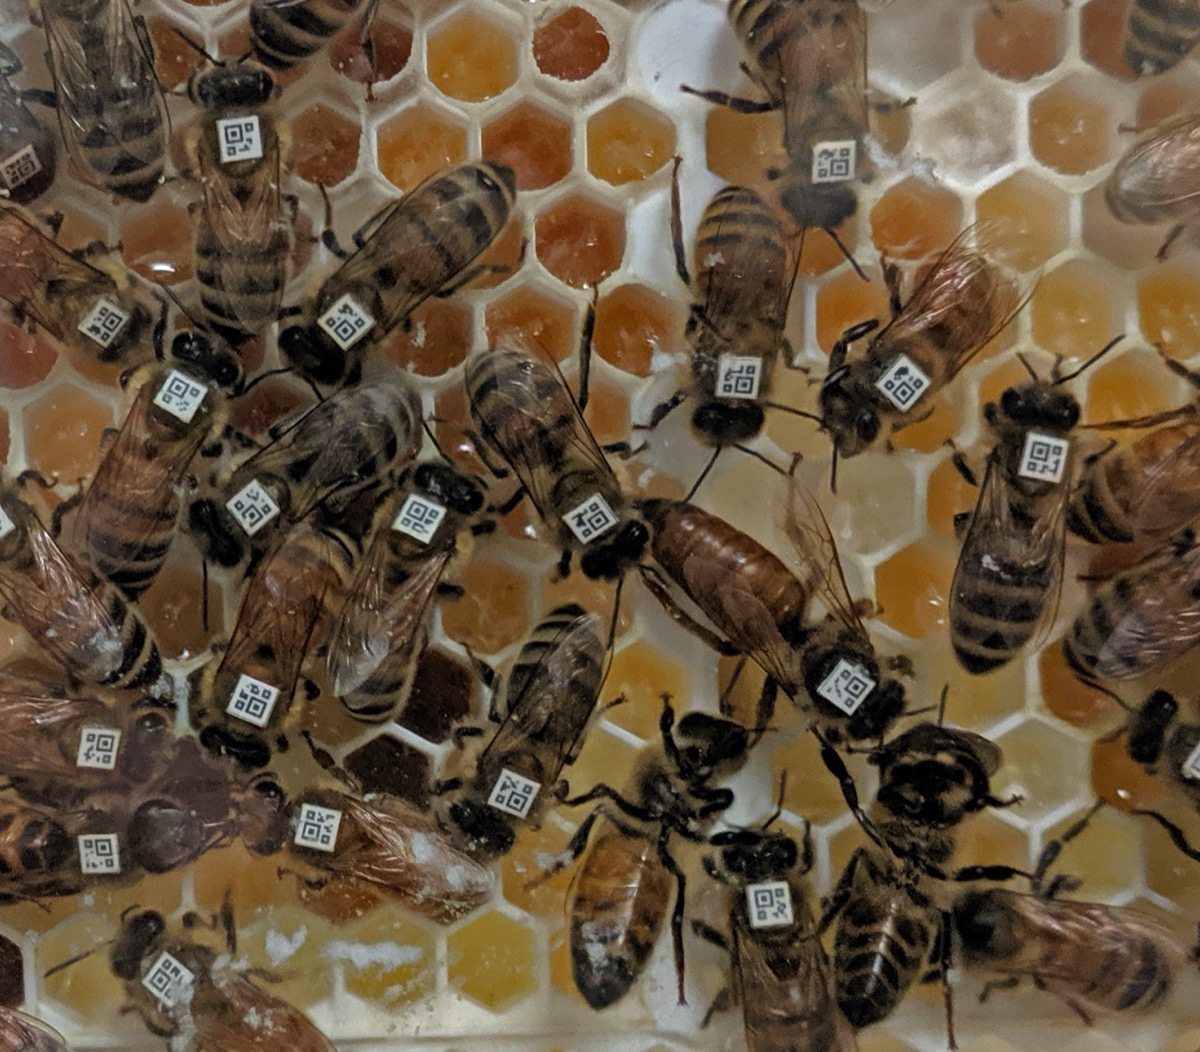 a colony of honey bees on a honeycomb. all the bees have little barcodes on their backs